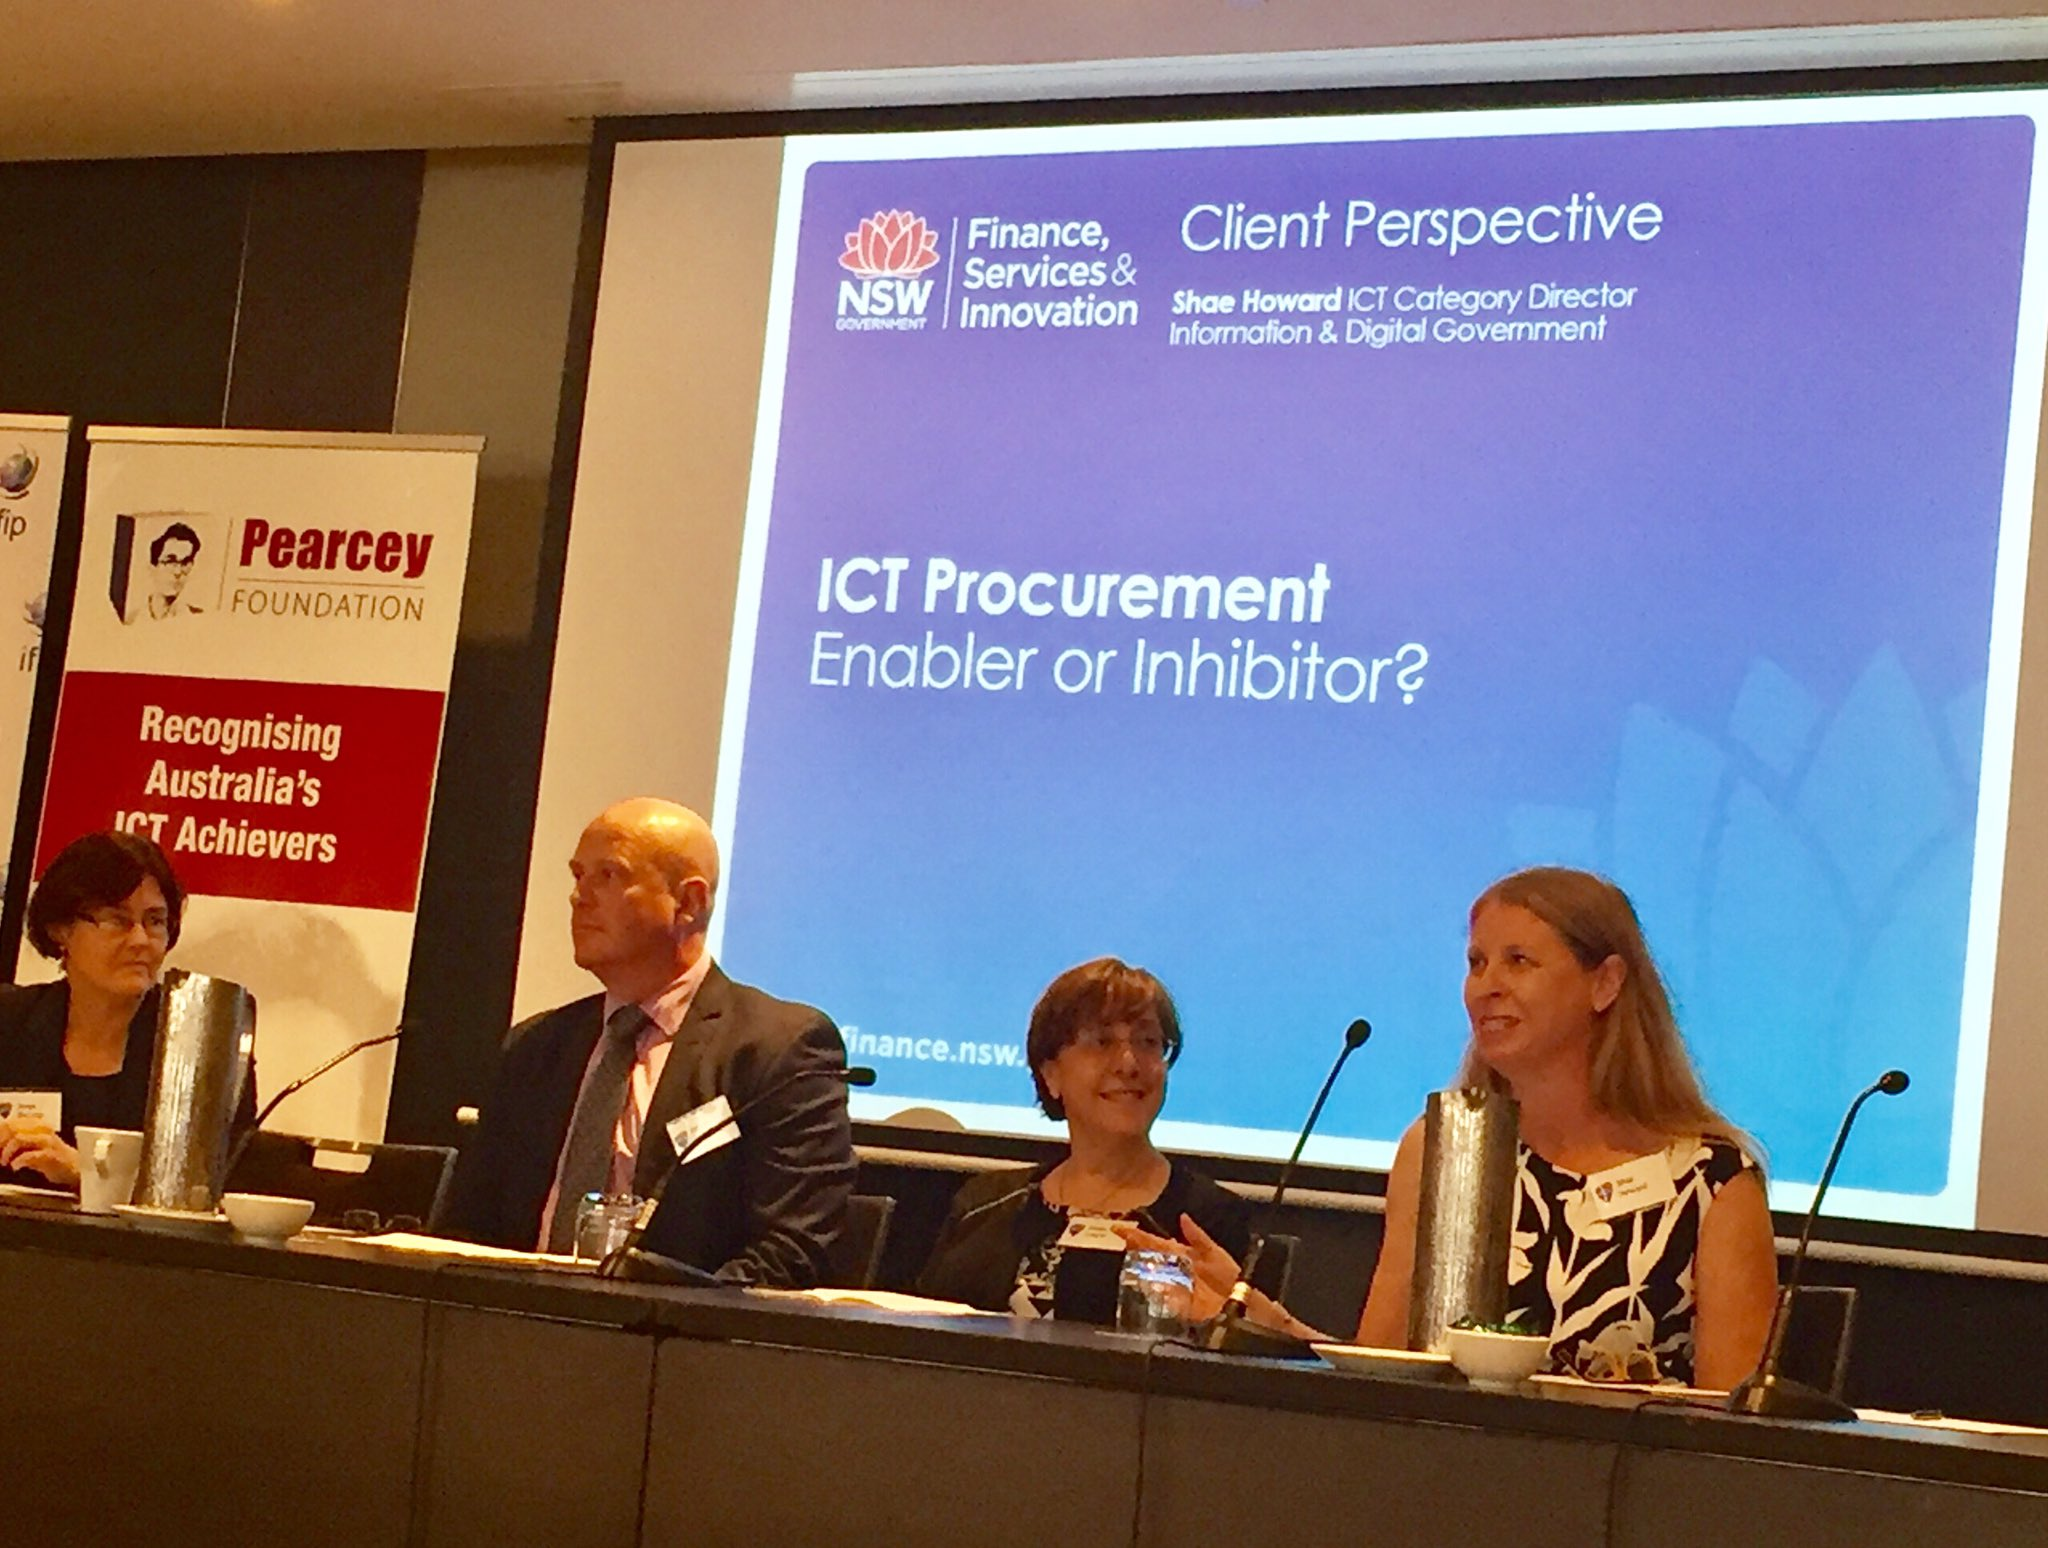 Client perspective ICT Procurement challenge @ICT_NSW Shae Howard  view from inside government welcomed open innovation opportunity https://t.co/d4mUGGdrGt